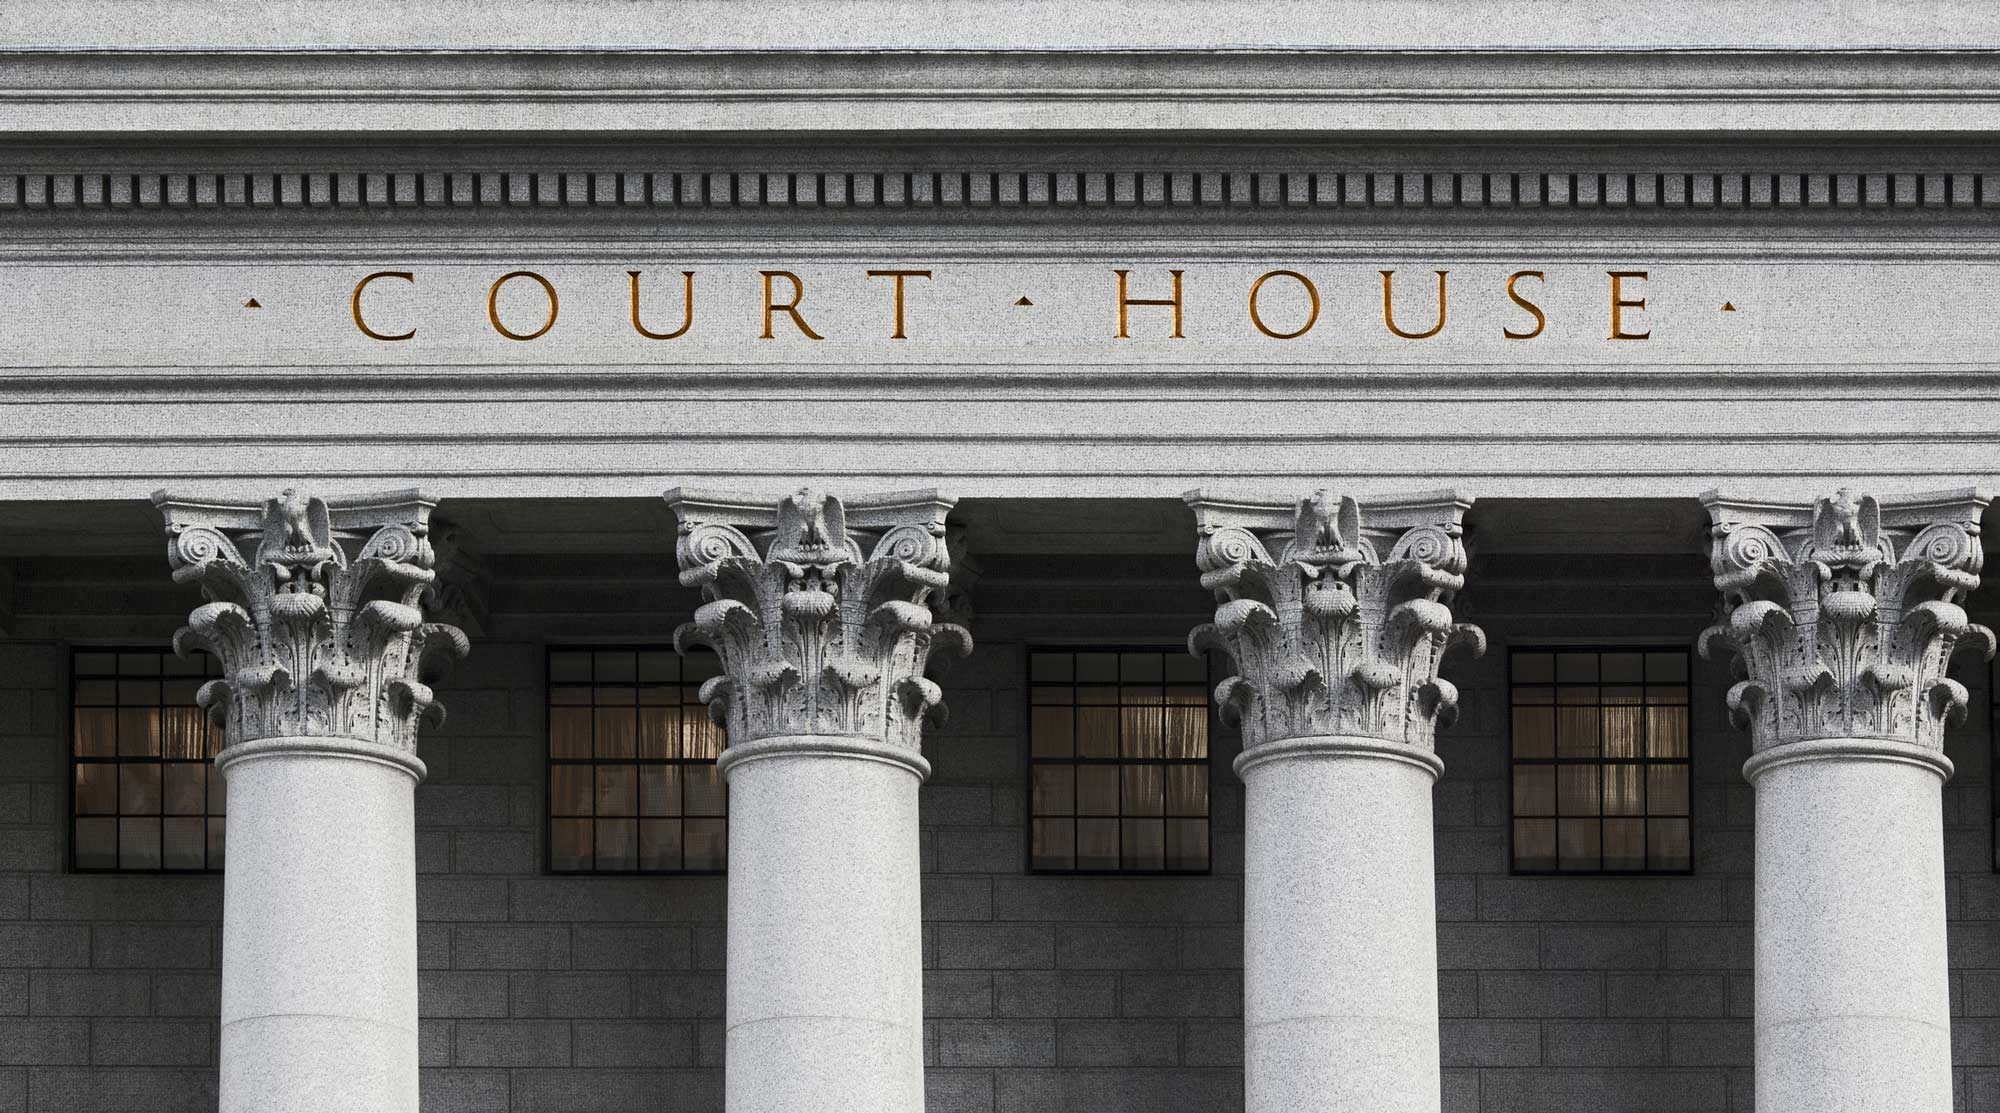 Massachusetts Debt Collection Attorneys is a professional law firm and will pursue your debts in a professional manner at all times. We strive to uphold our client's reputation along with our own in each case.